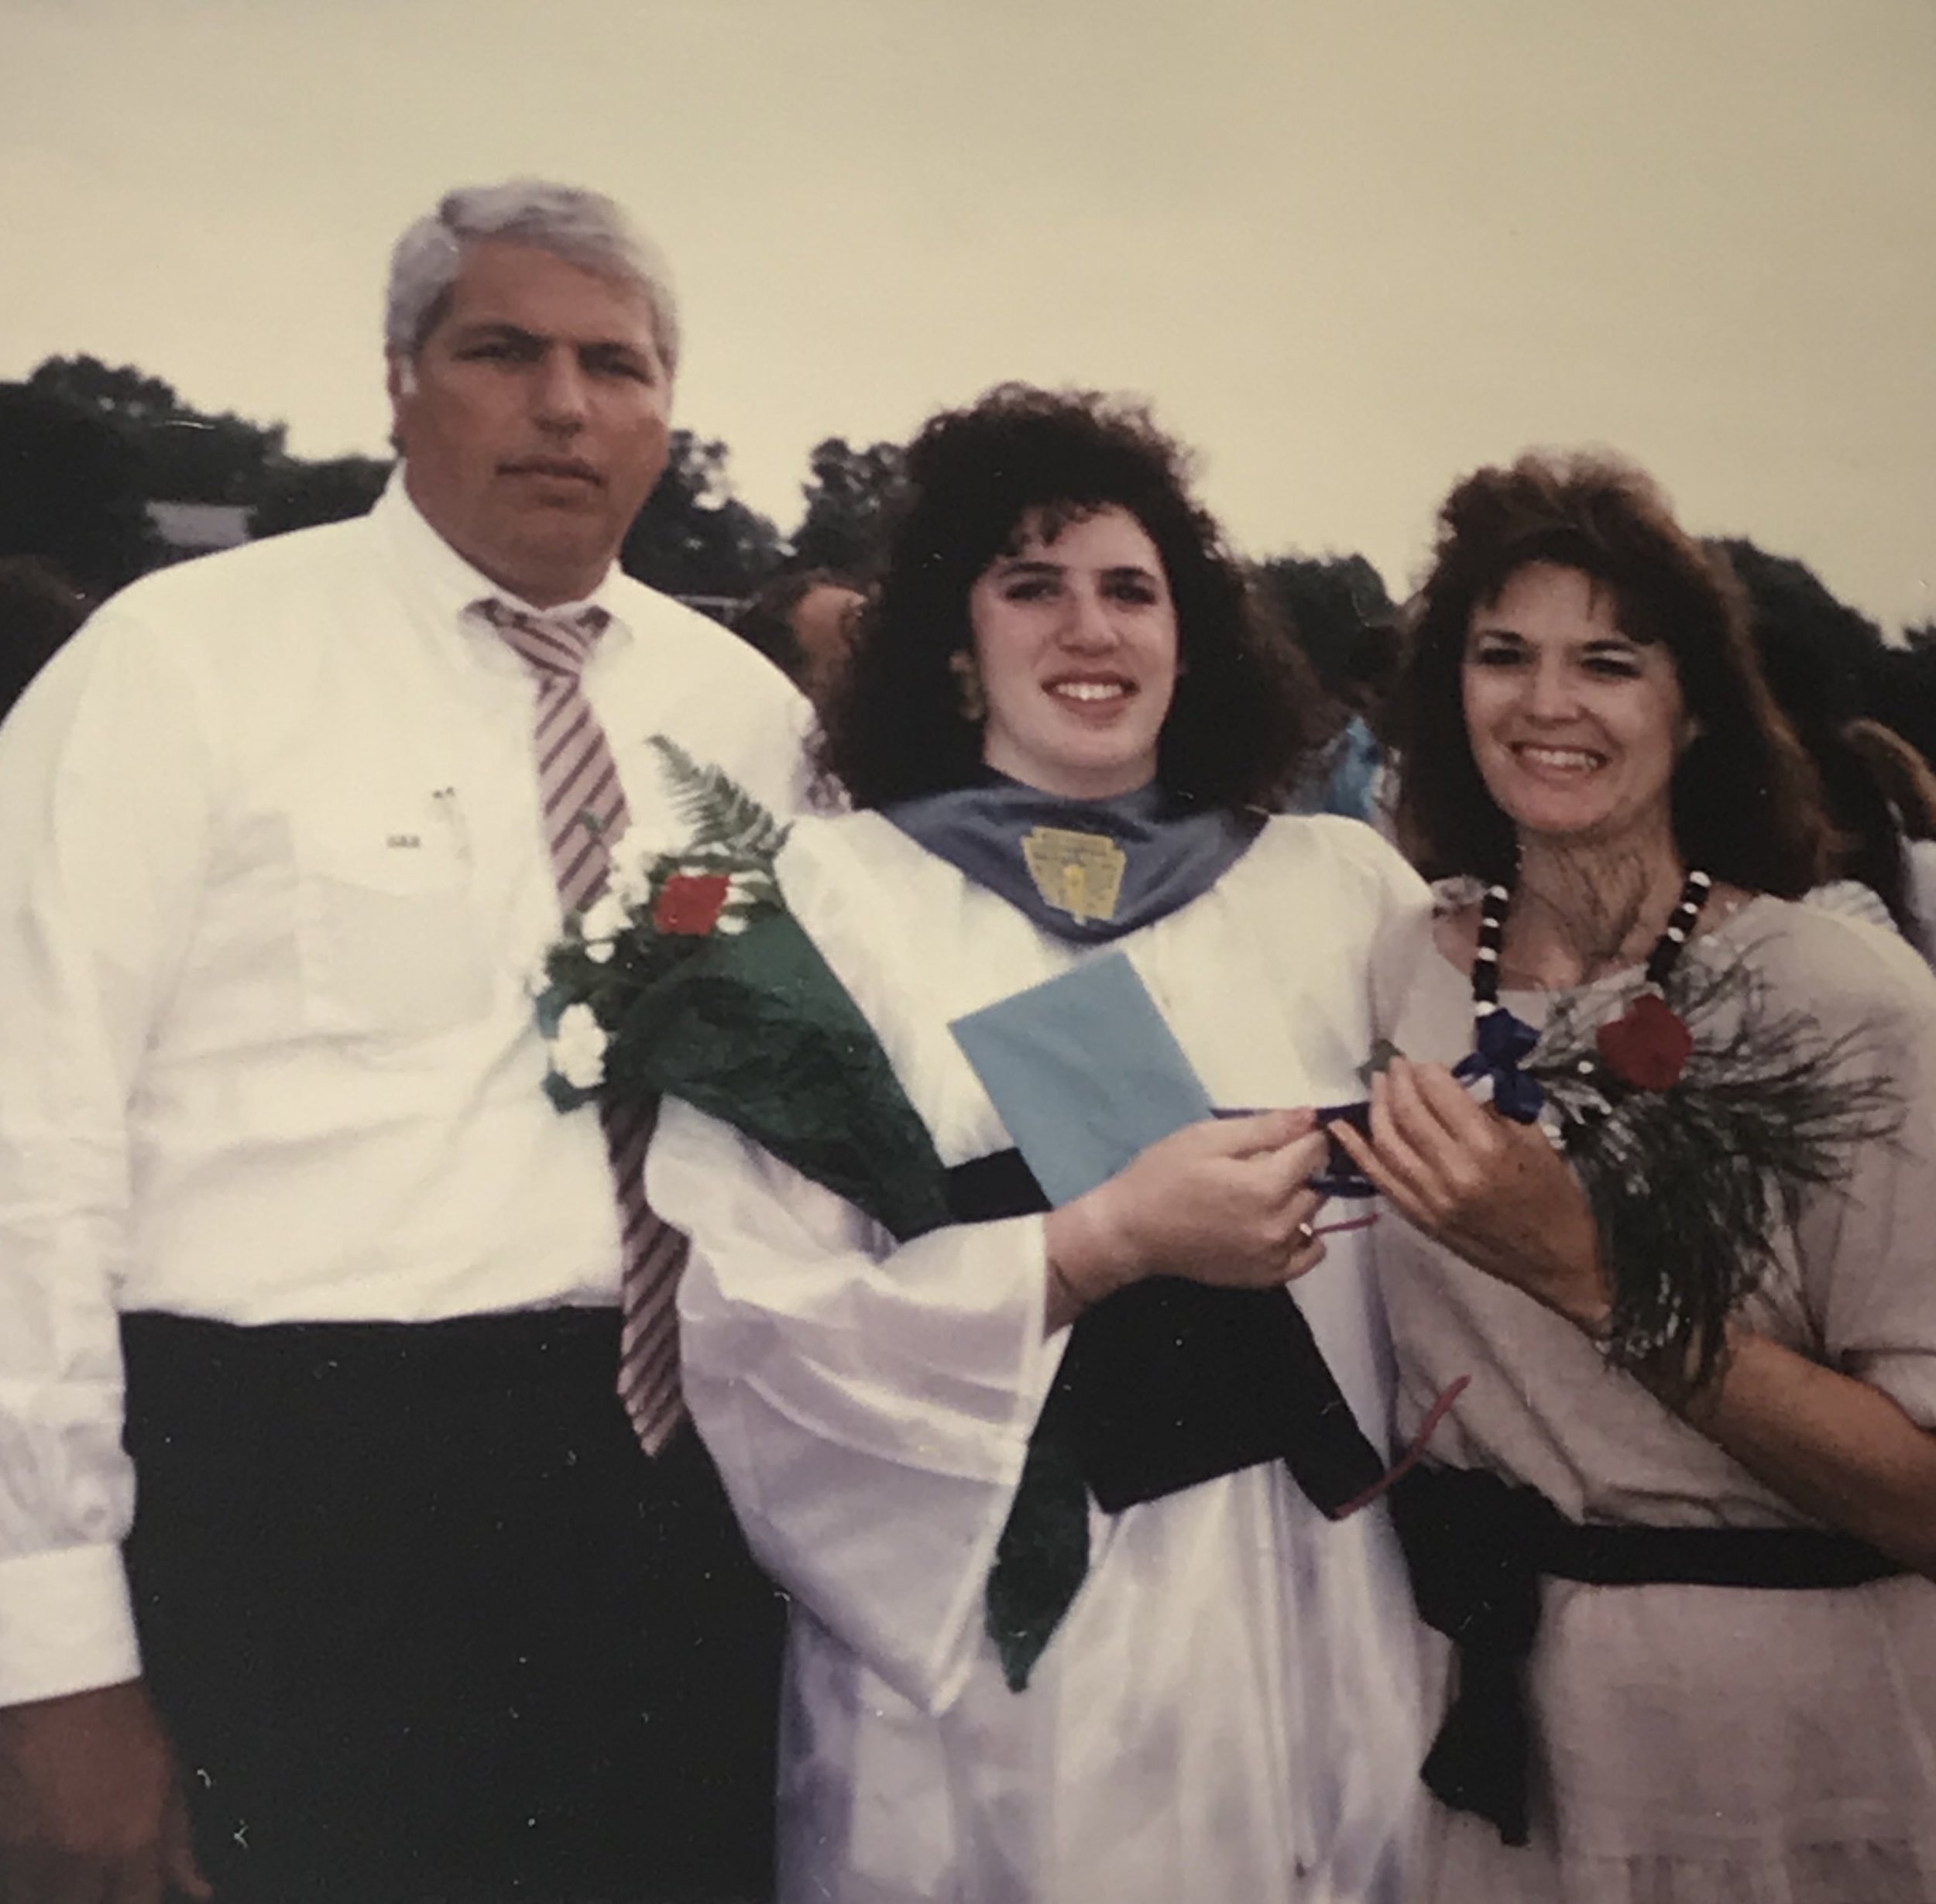 Posing with my parents and my cool shades at my high school graduation